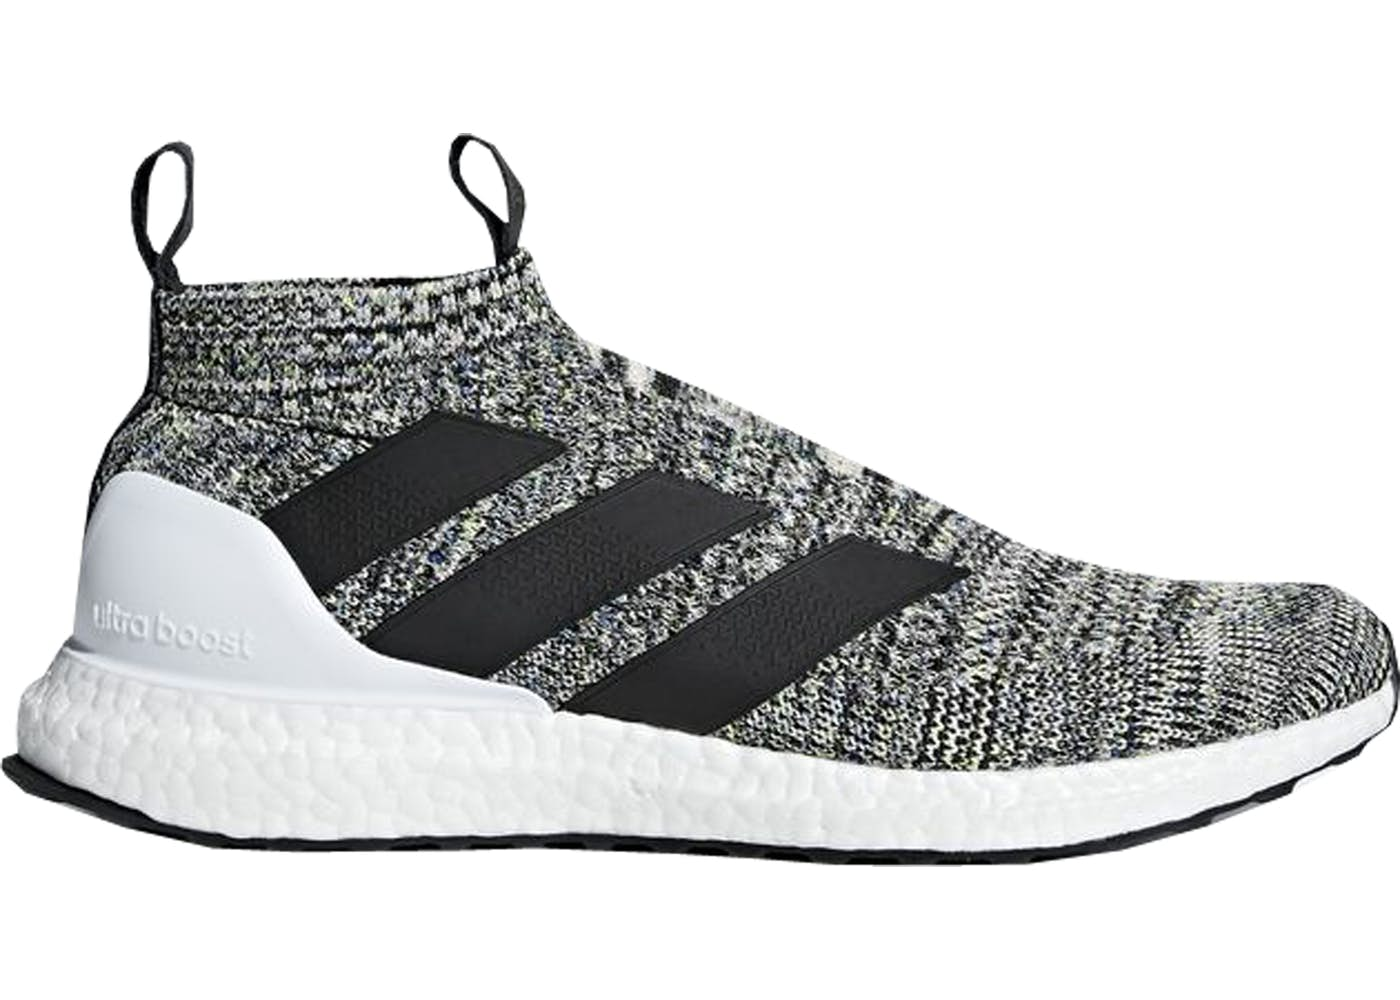 adidas ace 16 ultra boost oreo. Black Bedroom Furniture Sets. Home Design Ideas